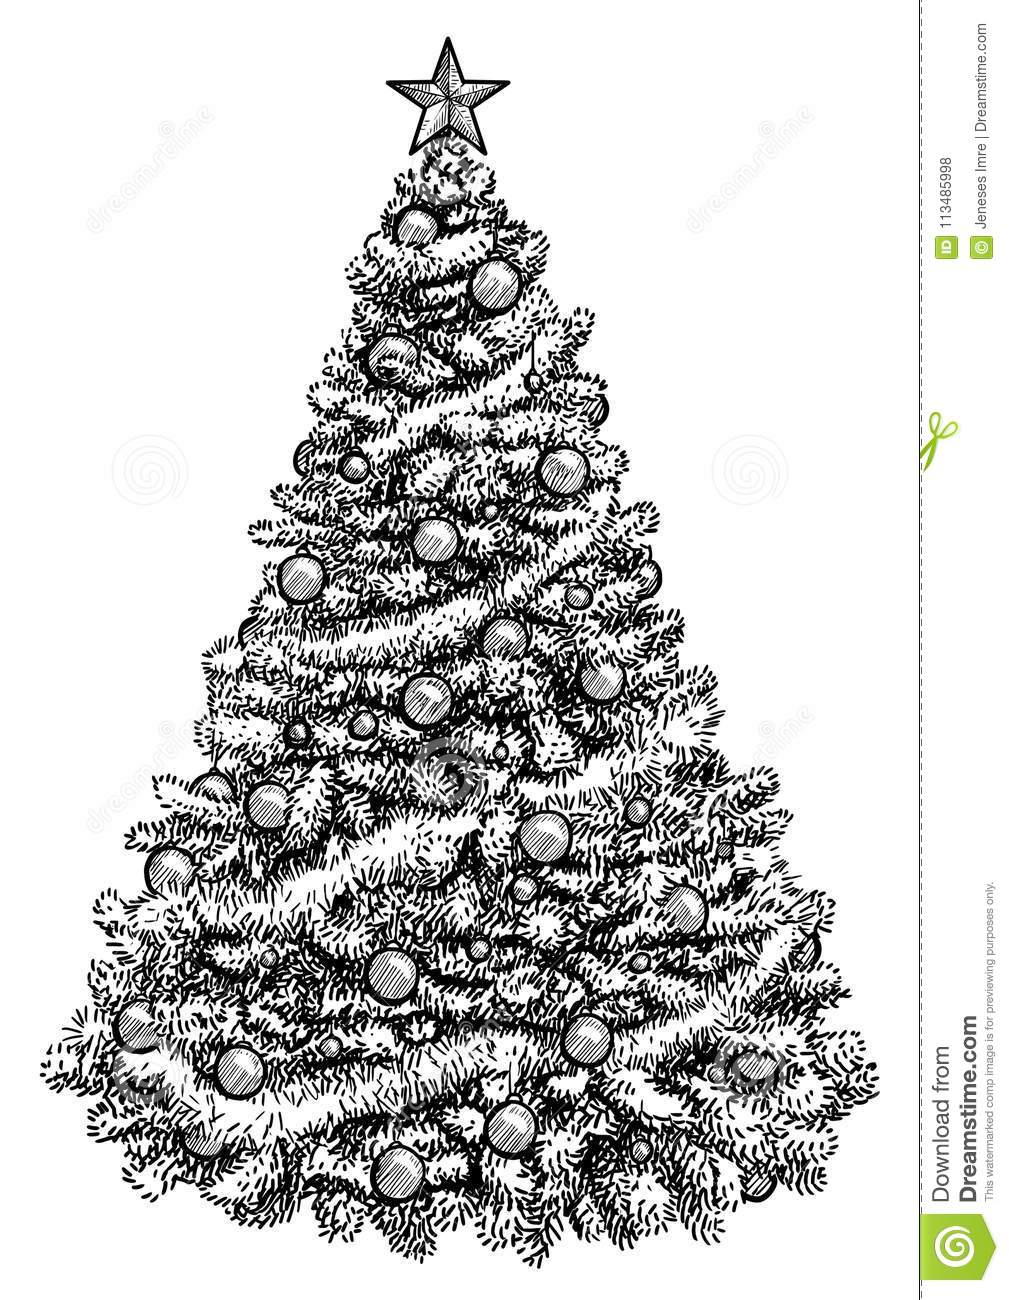 Drawing Of A Christmas Tree.Christmas Tree Illustration Drawing Engraving Ink Line